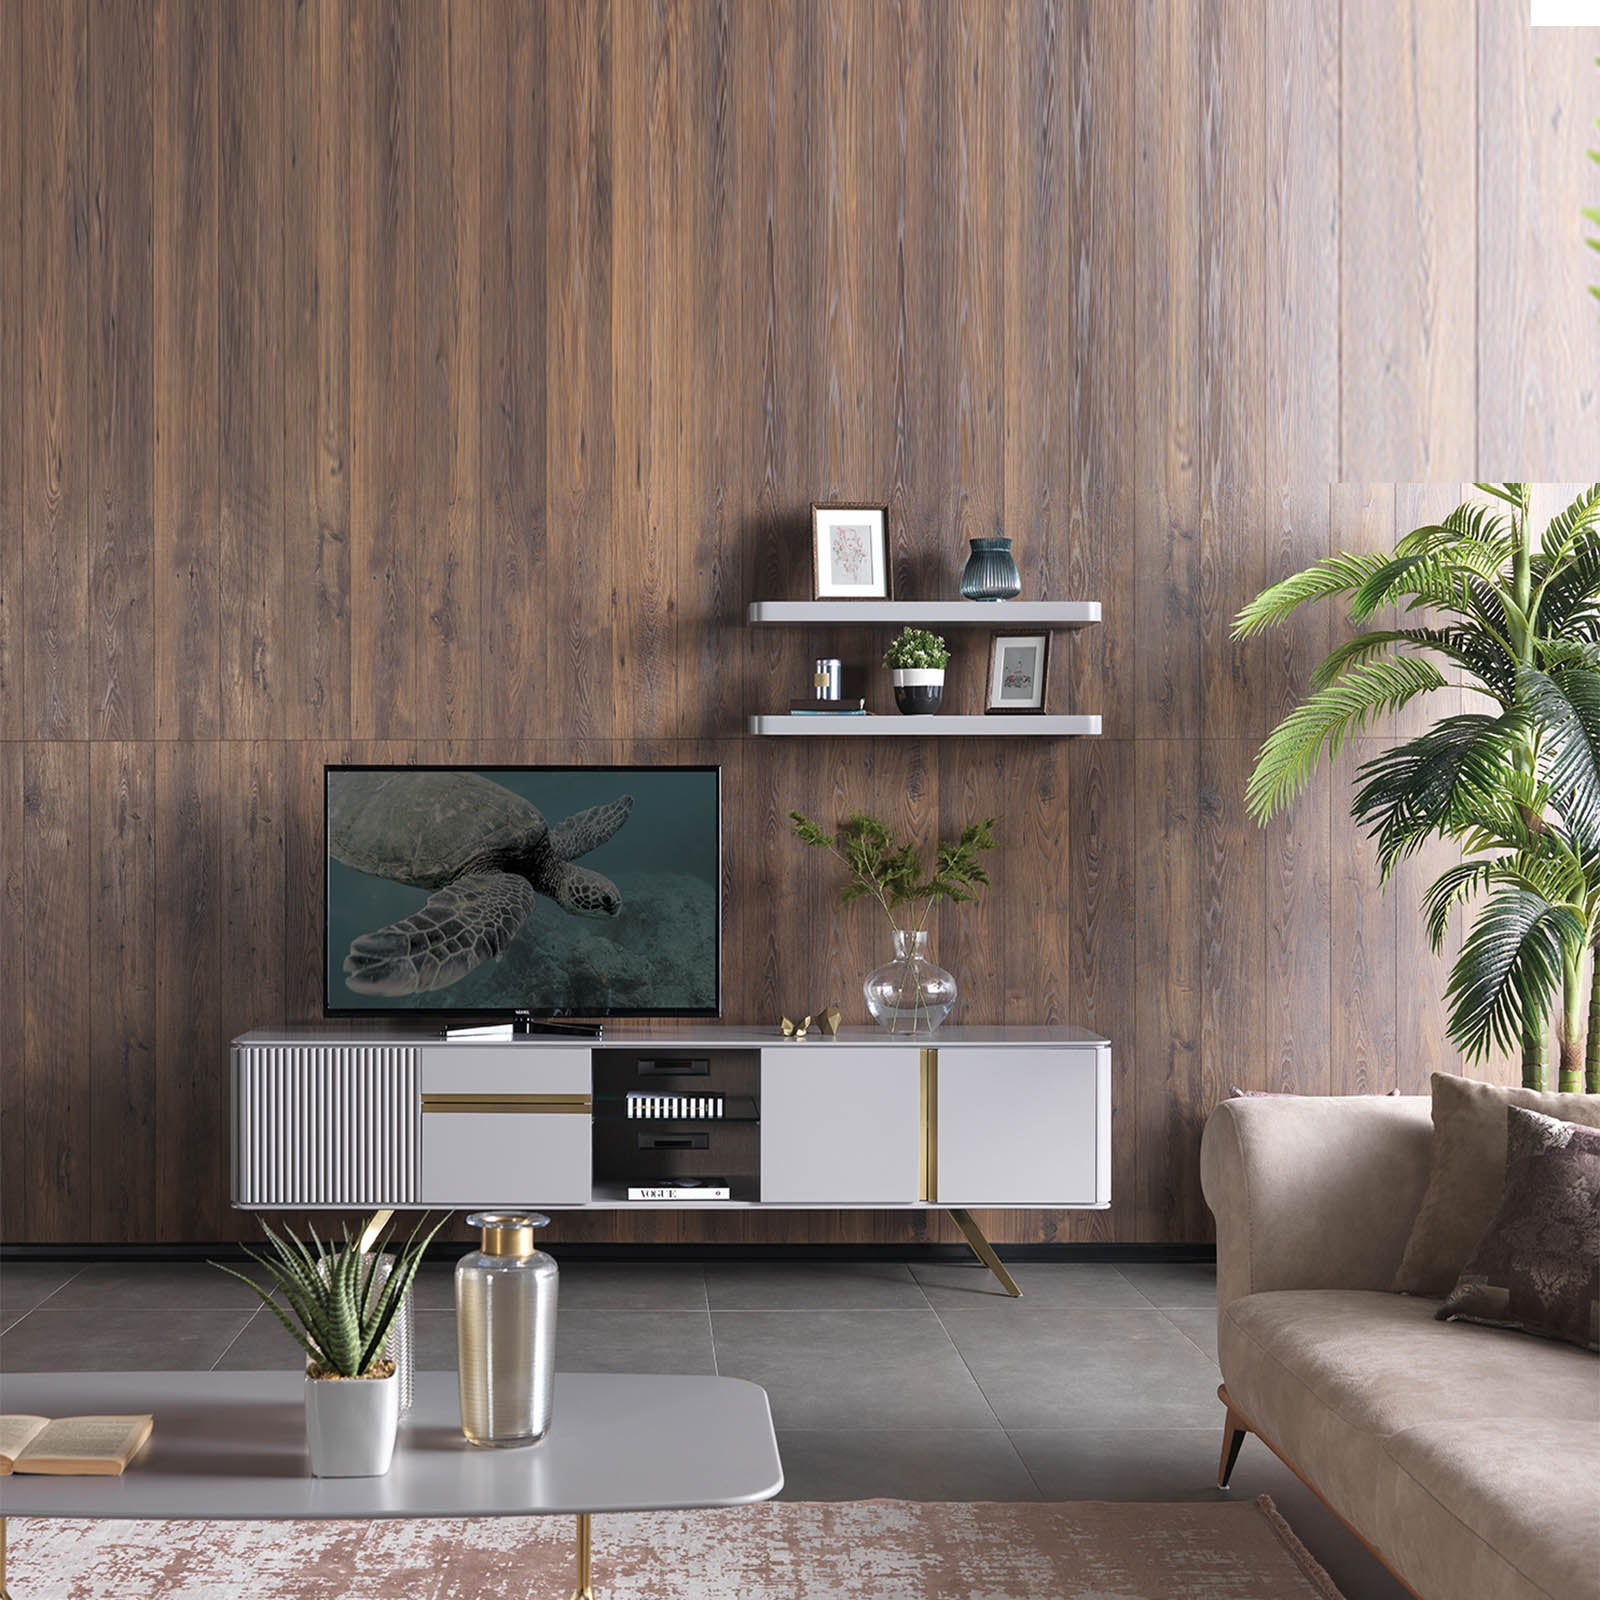 MALENA TV unit MAL005 -  طاولة تلفزيون من مالينا - Shop Online Furniture and Home Decor Store in Dubai, UAE at ebarza